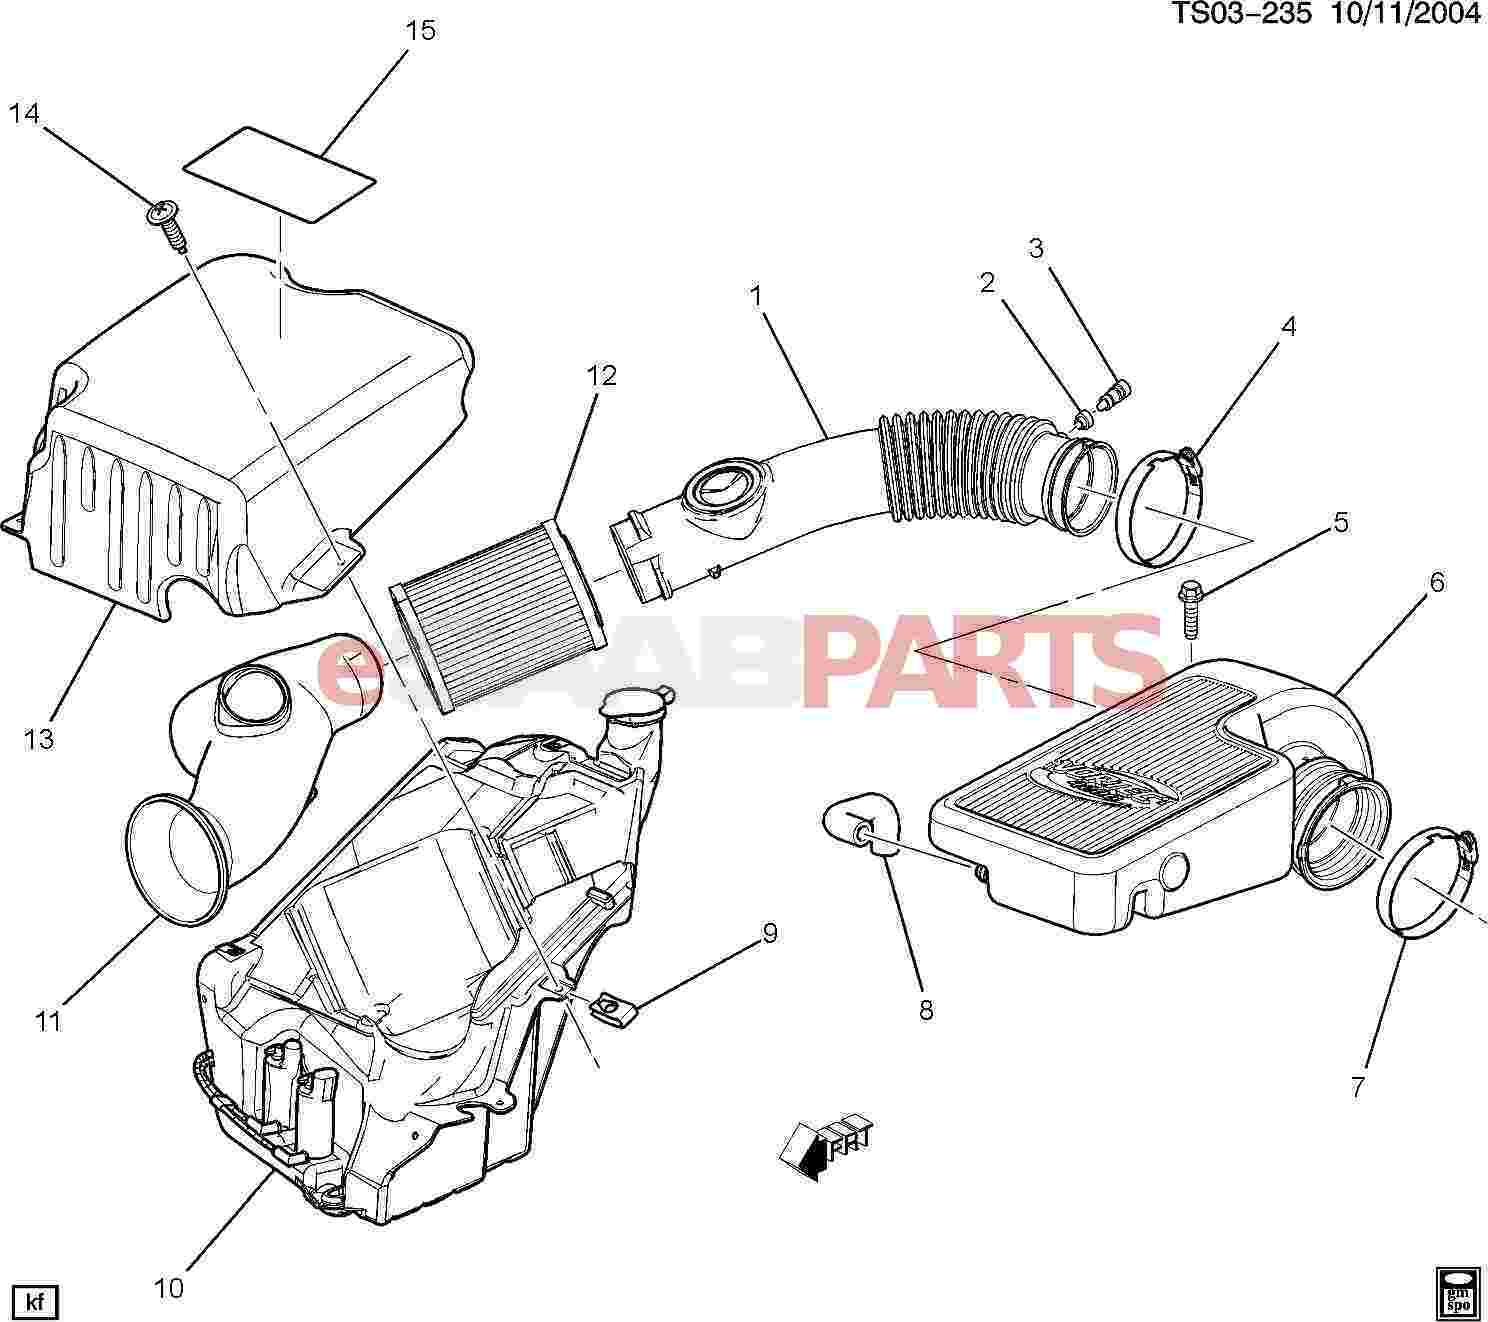 DOWNLOAD [DIAGRAM] 2004 Trailblazer Ls 4 2 Fuse Box